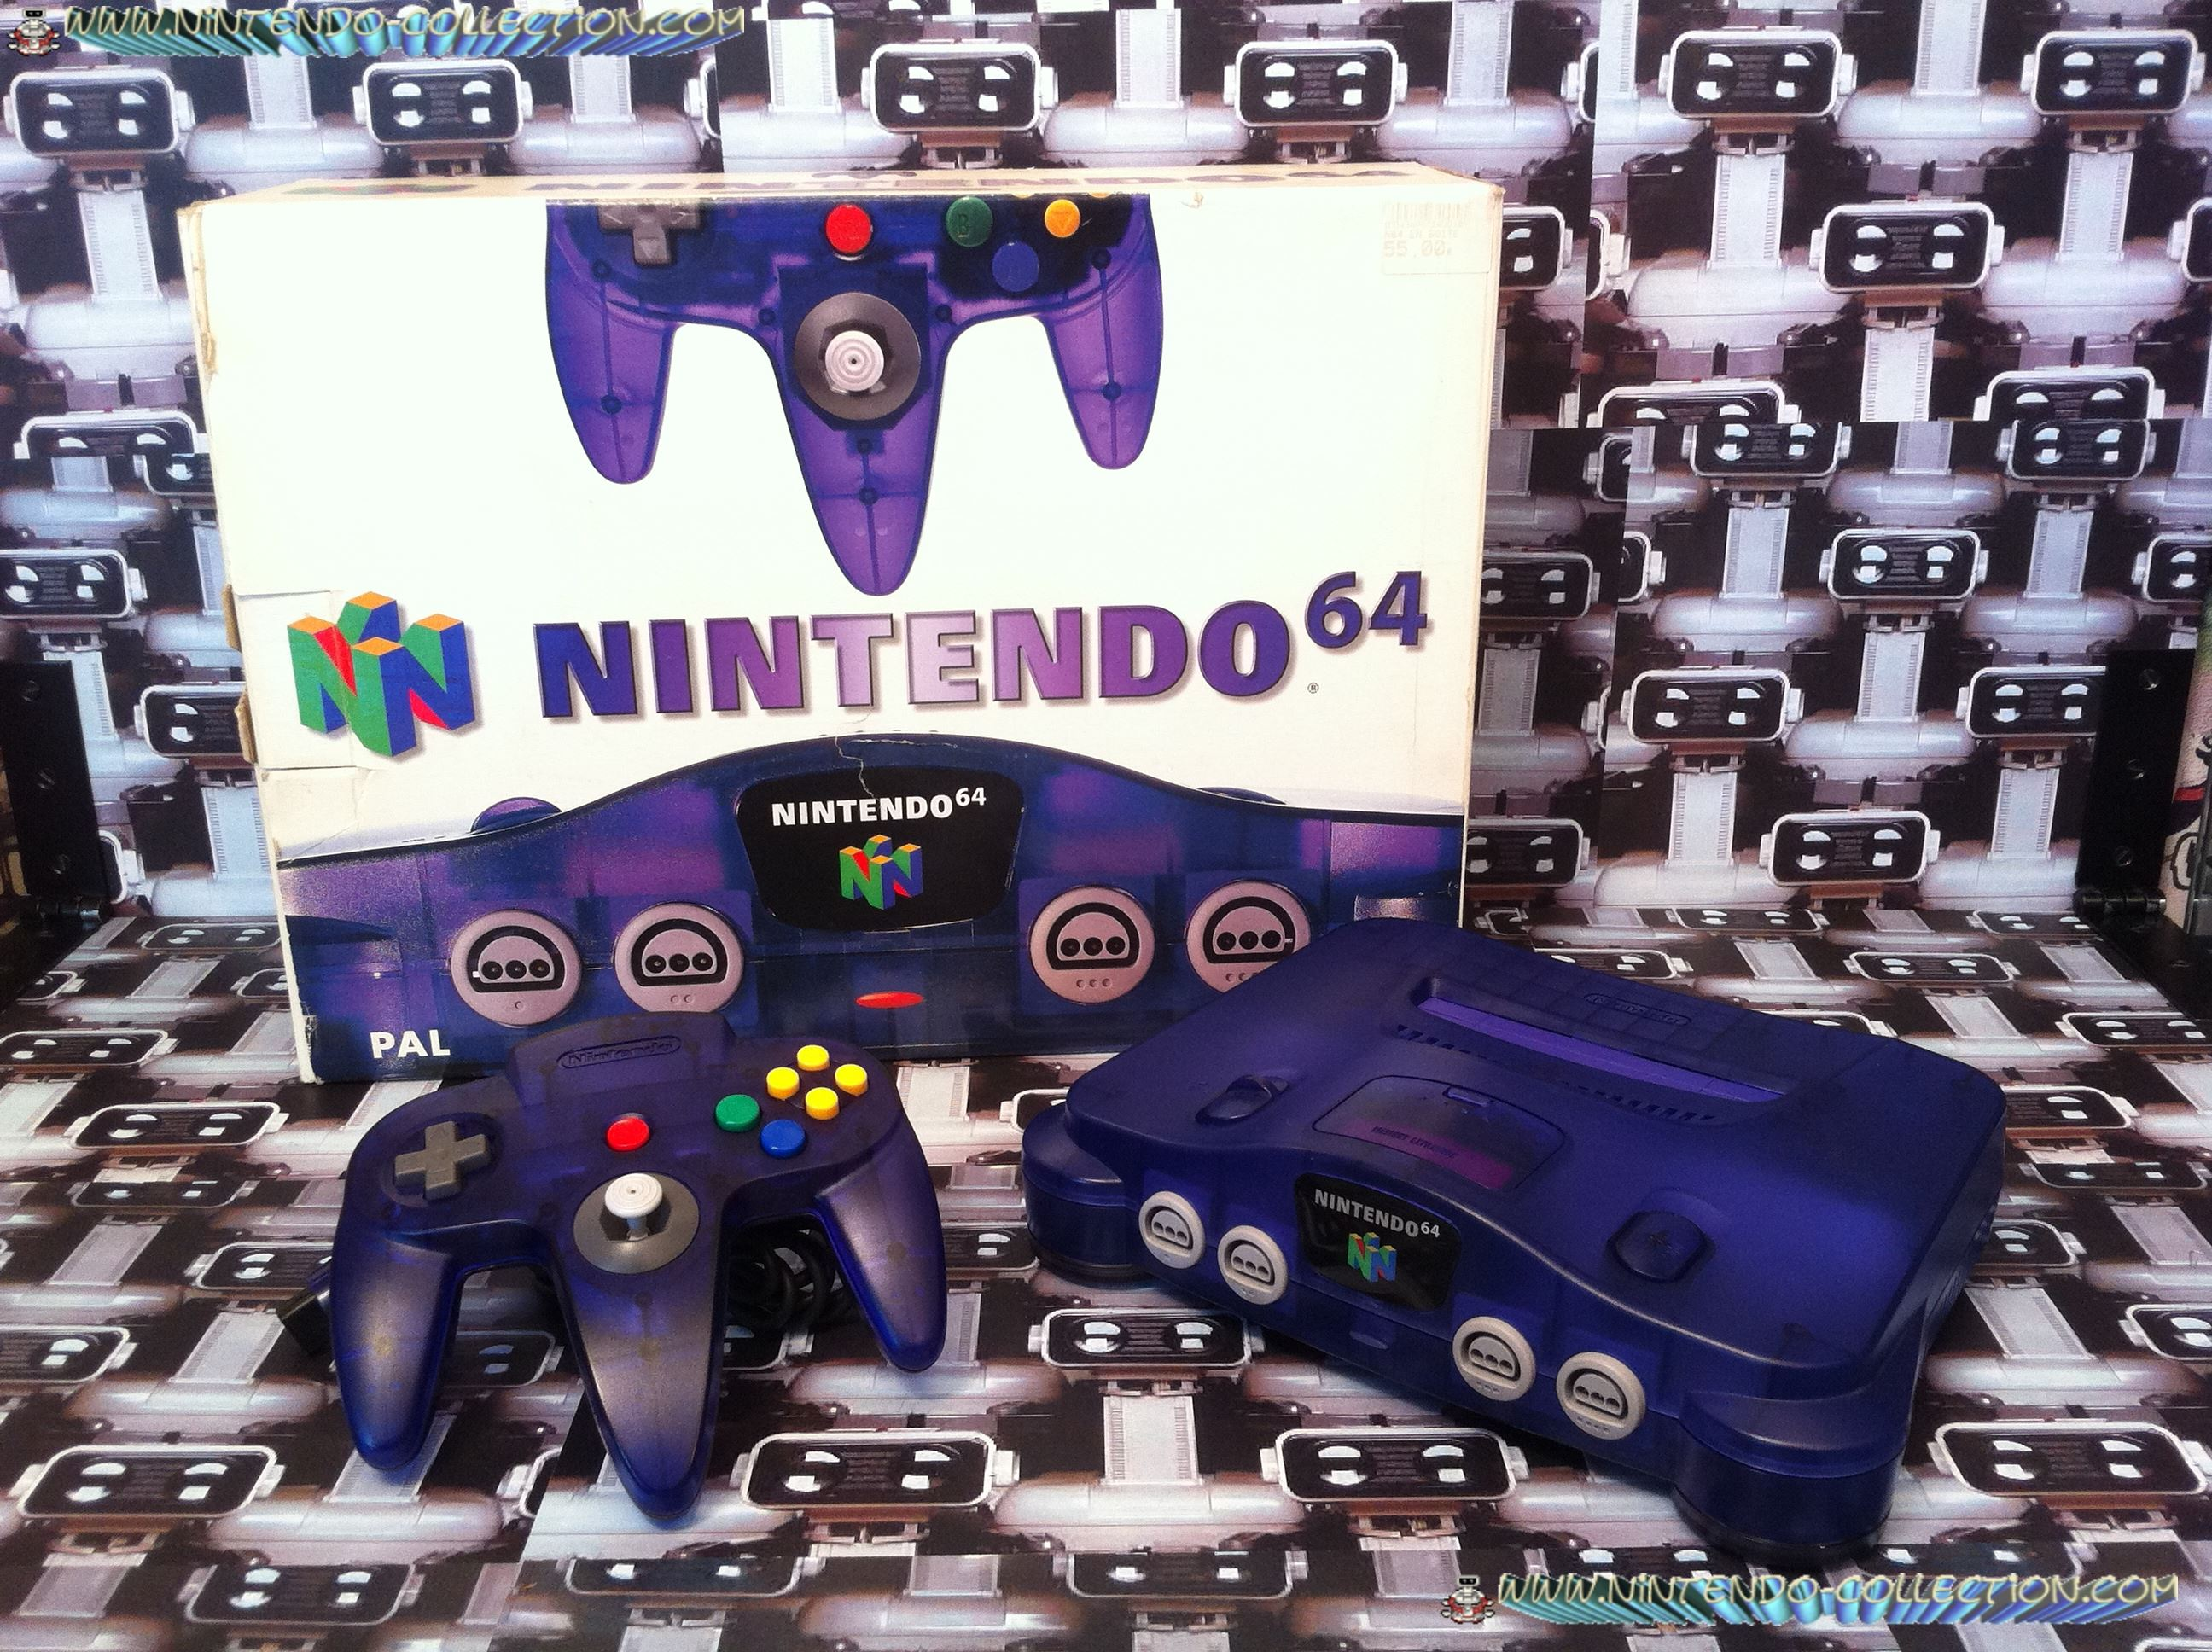 www.nintendo-collection.com - Nintendo 64 N64 Clear Purple - Violette transparente - Funtastic